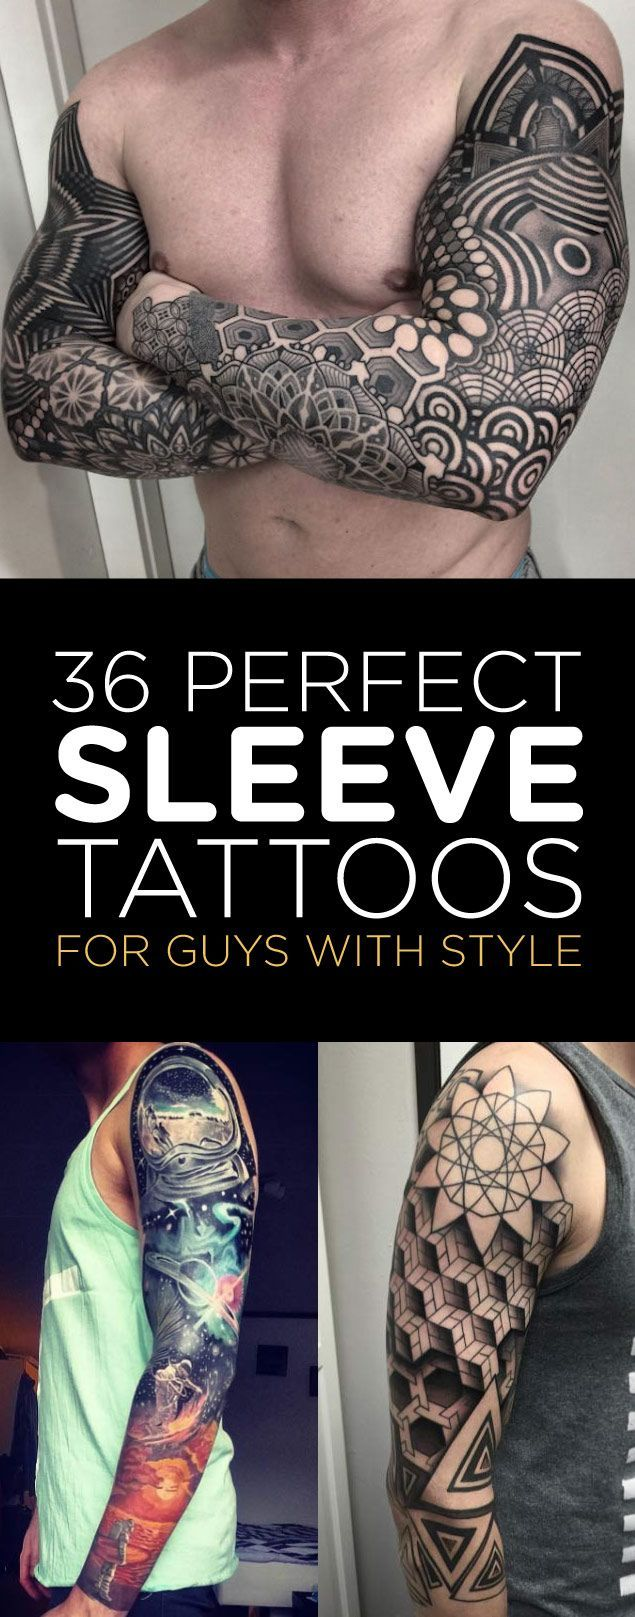 TattooBlend-Sleeve-Tattoos-Guys.jpg 635×1,617 pixeles